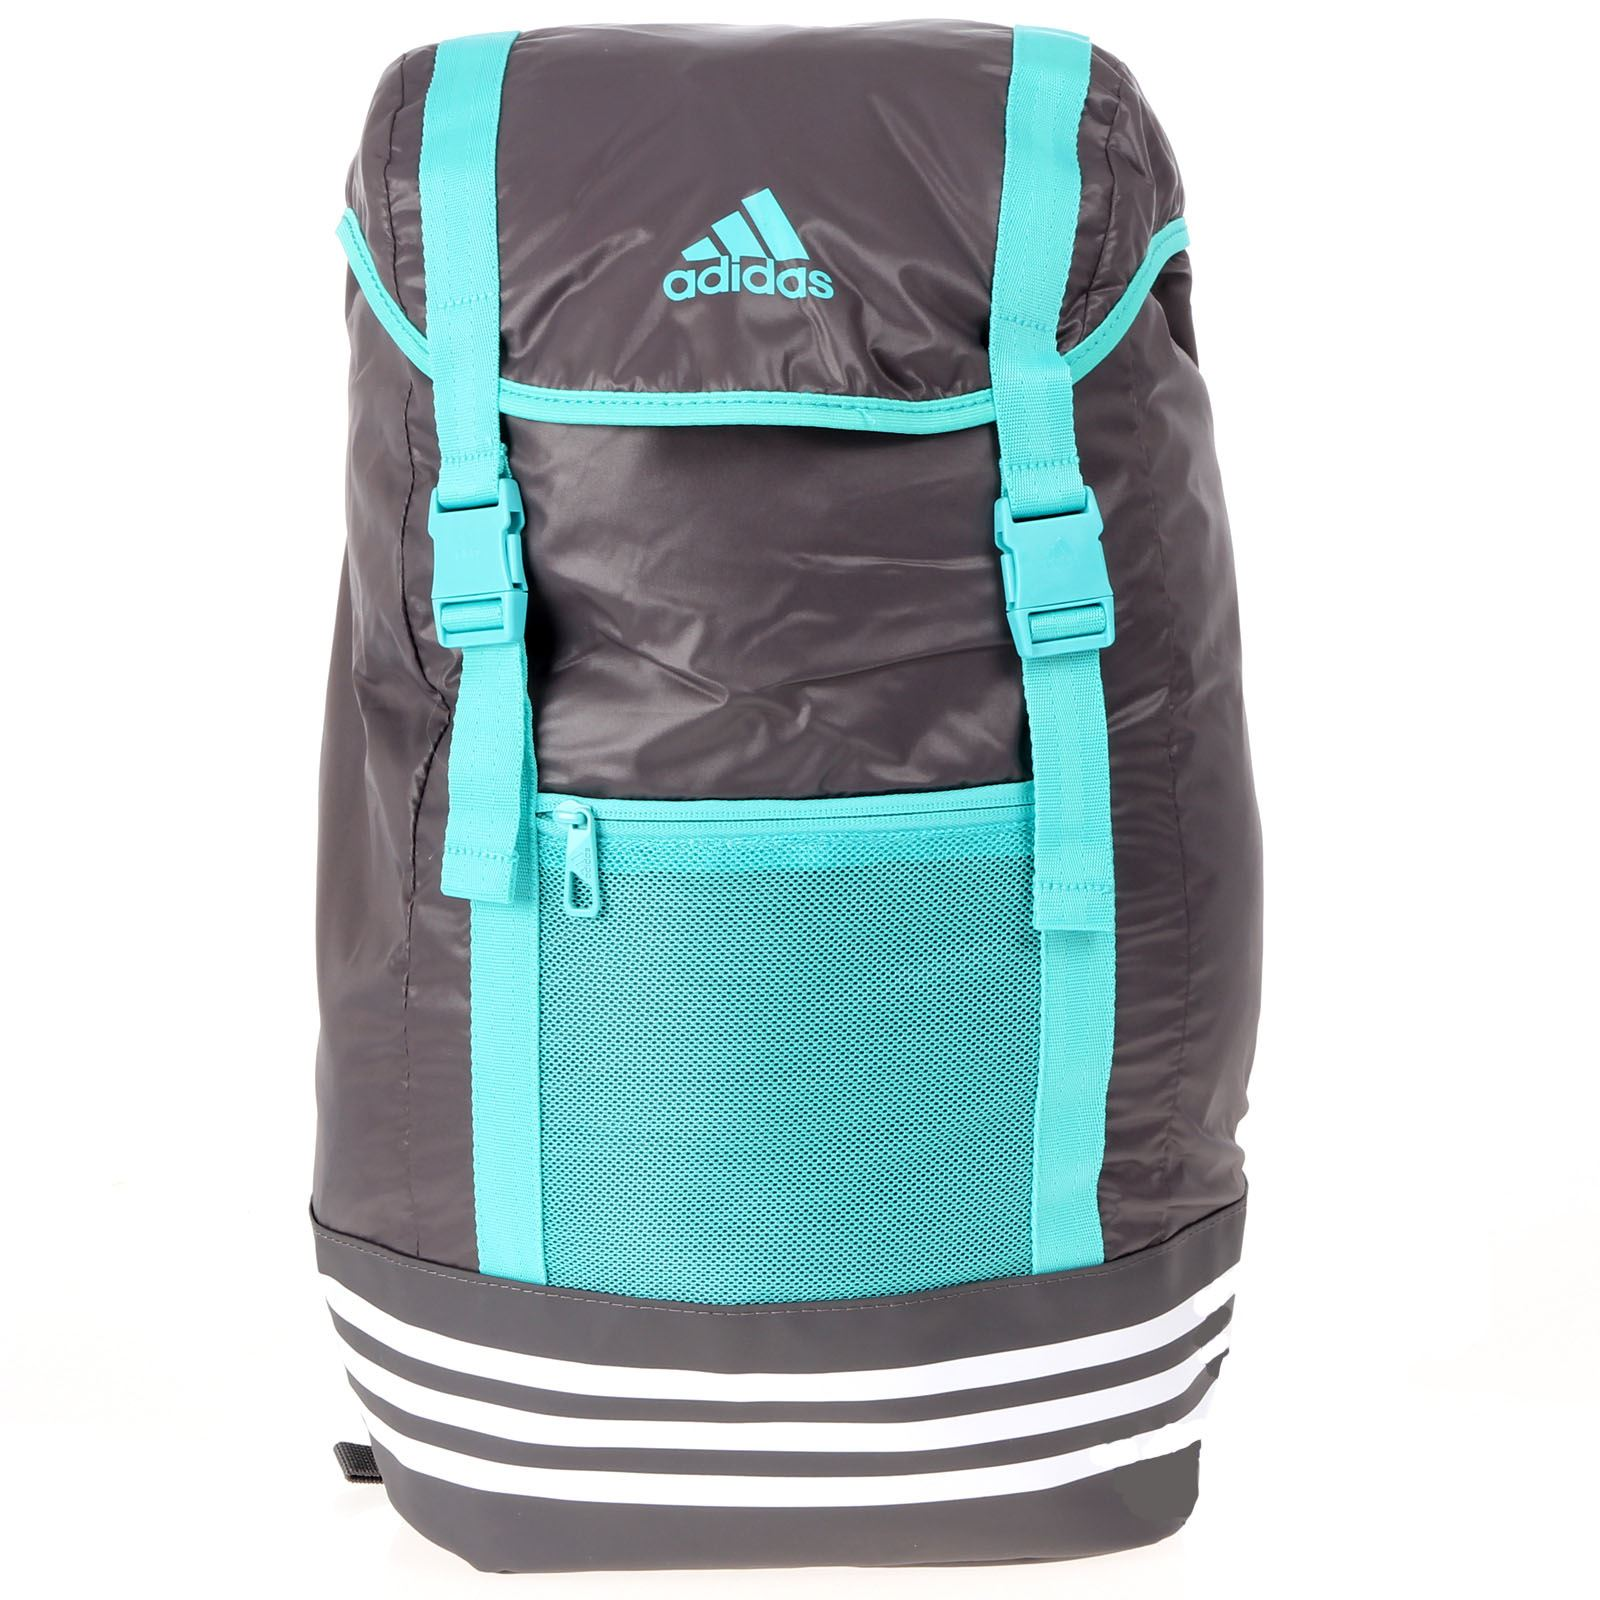 c3c76a797b4b8 Details about adidas Climacool Active Life G Backpack Grey Green Bag BP  Rucksack Holdall